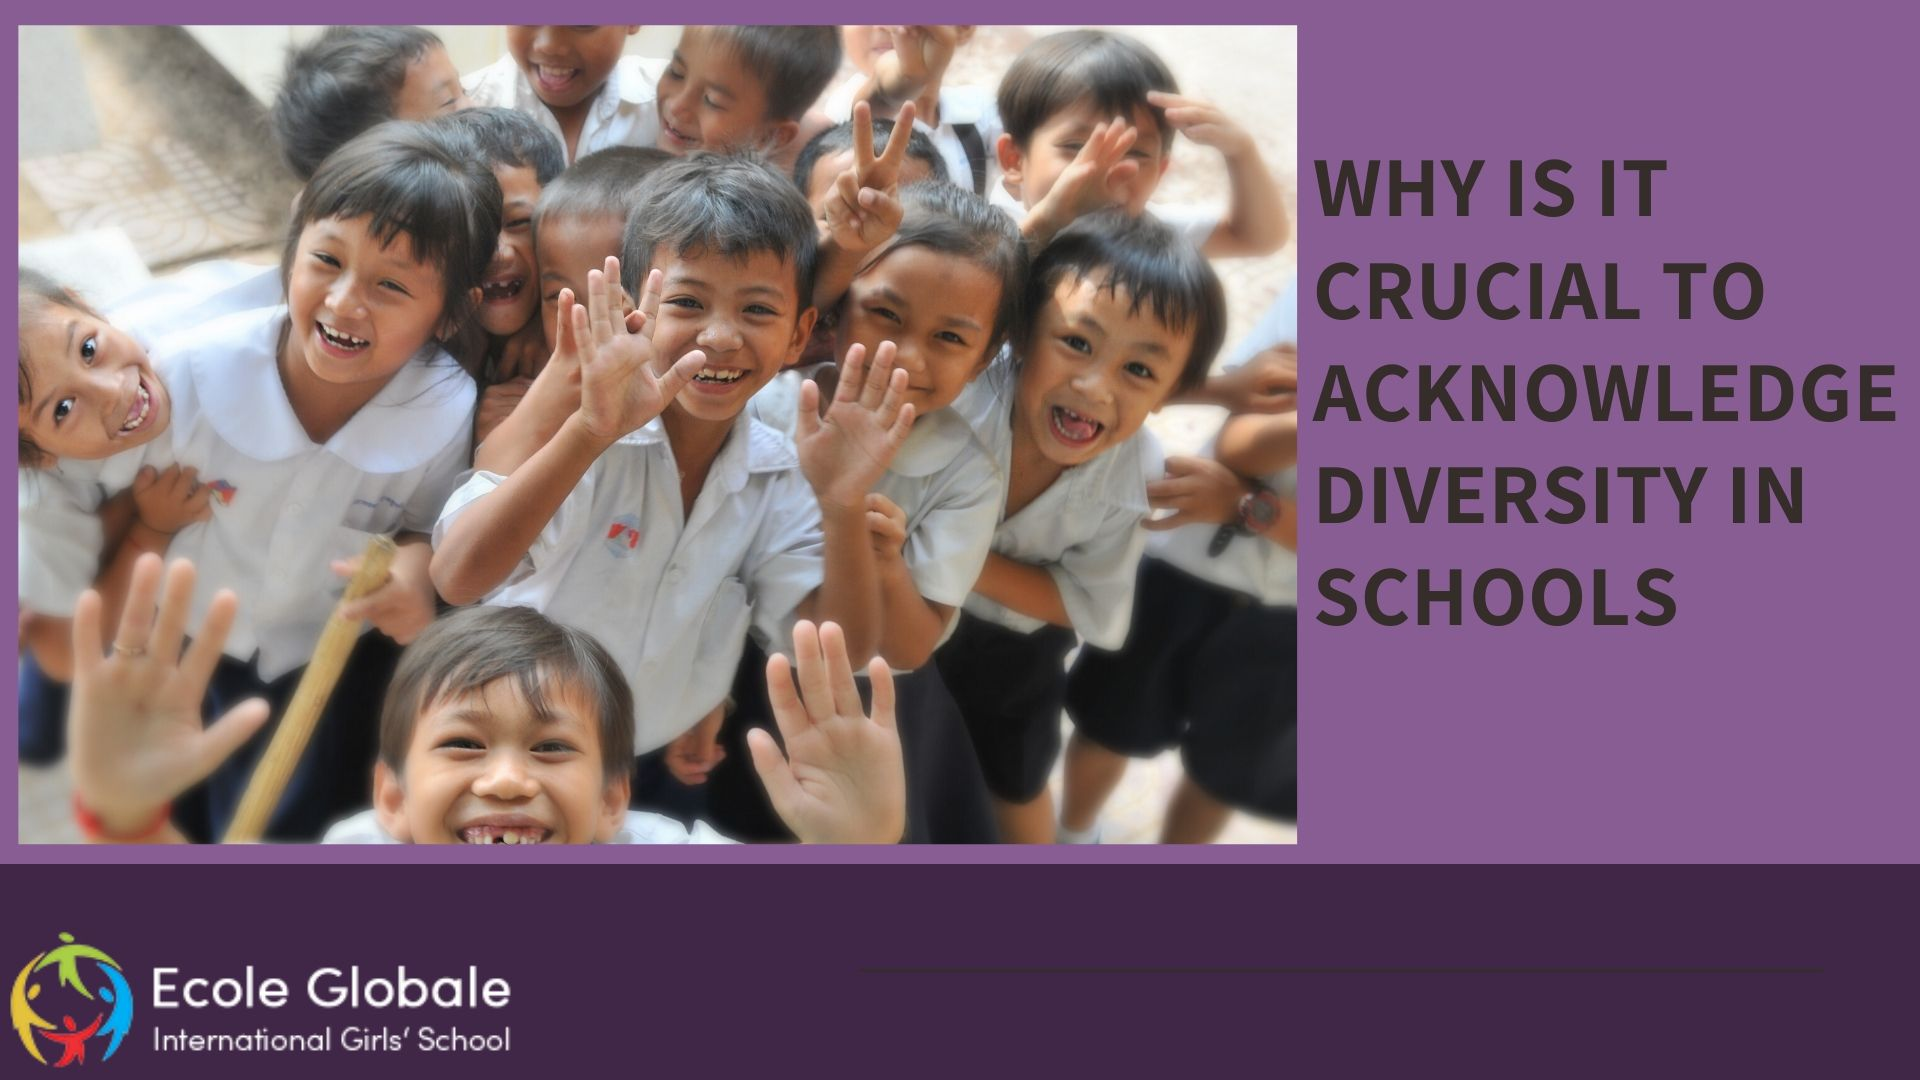 Why is it crucial to acknowledge diversity in schools